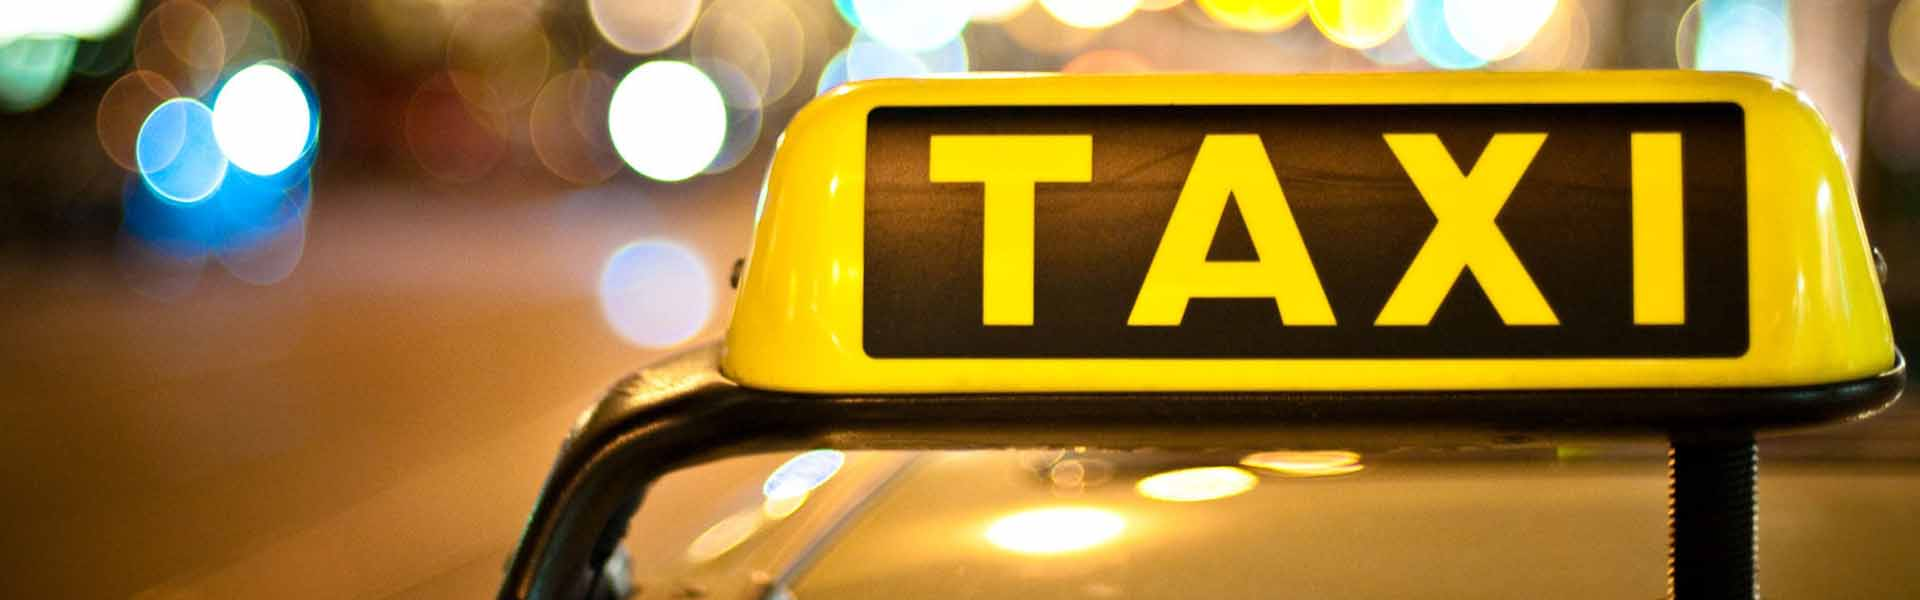 Rent a car or taxi - what to choose?